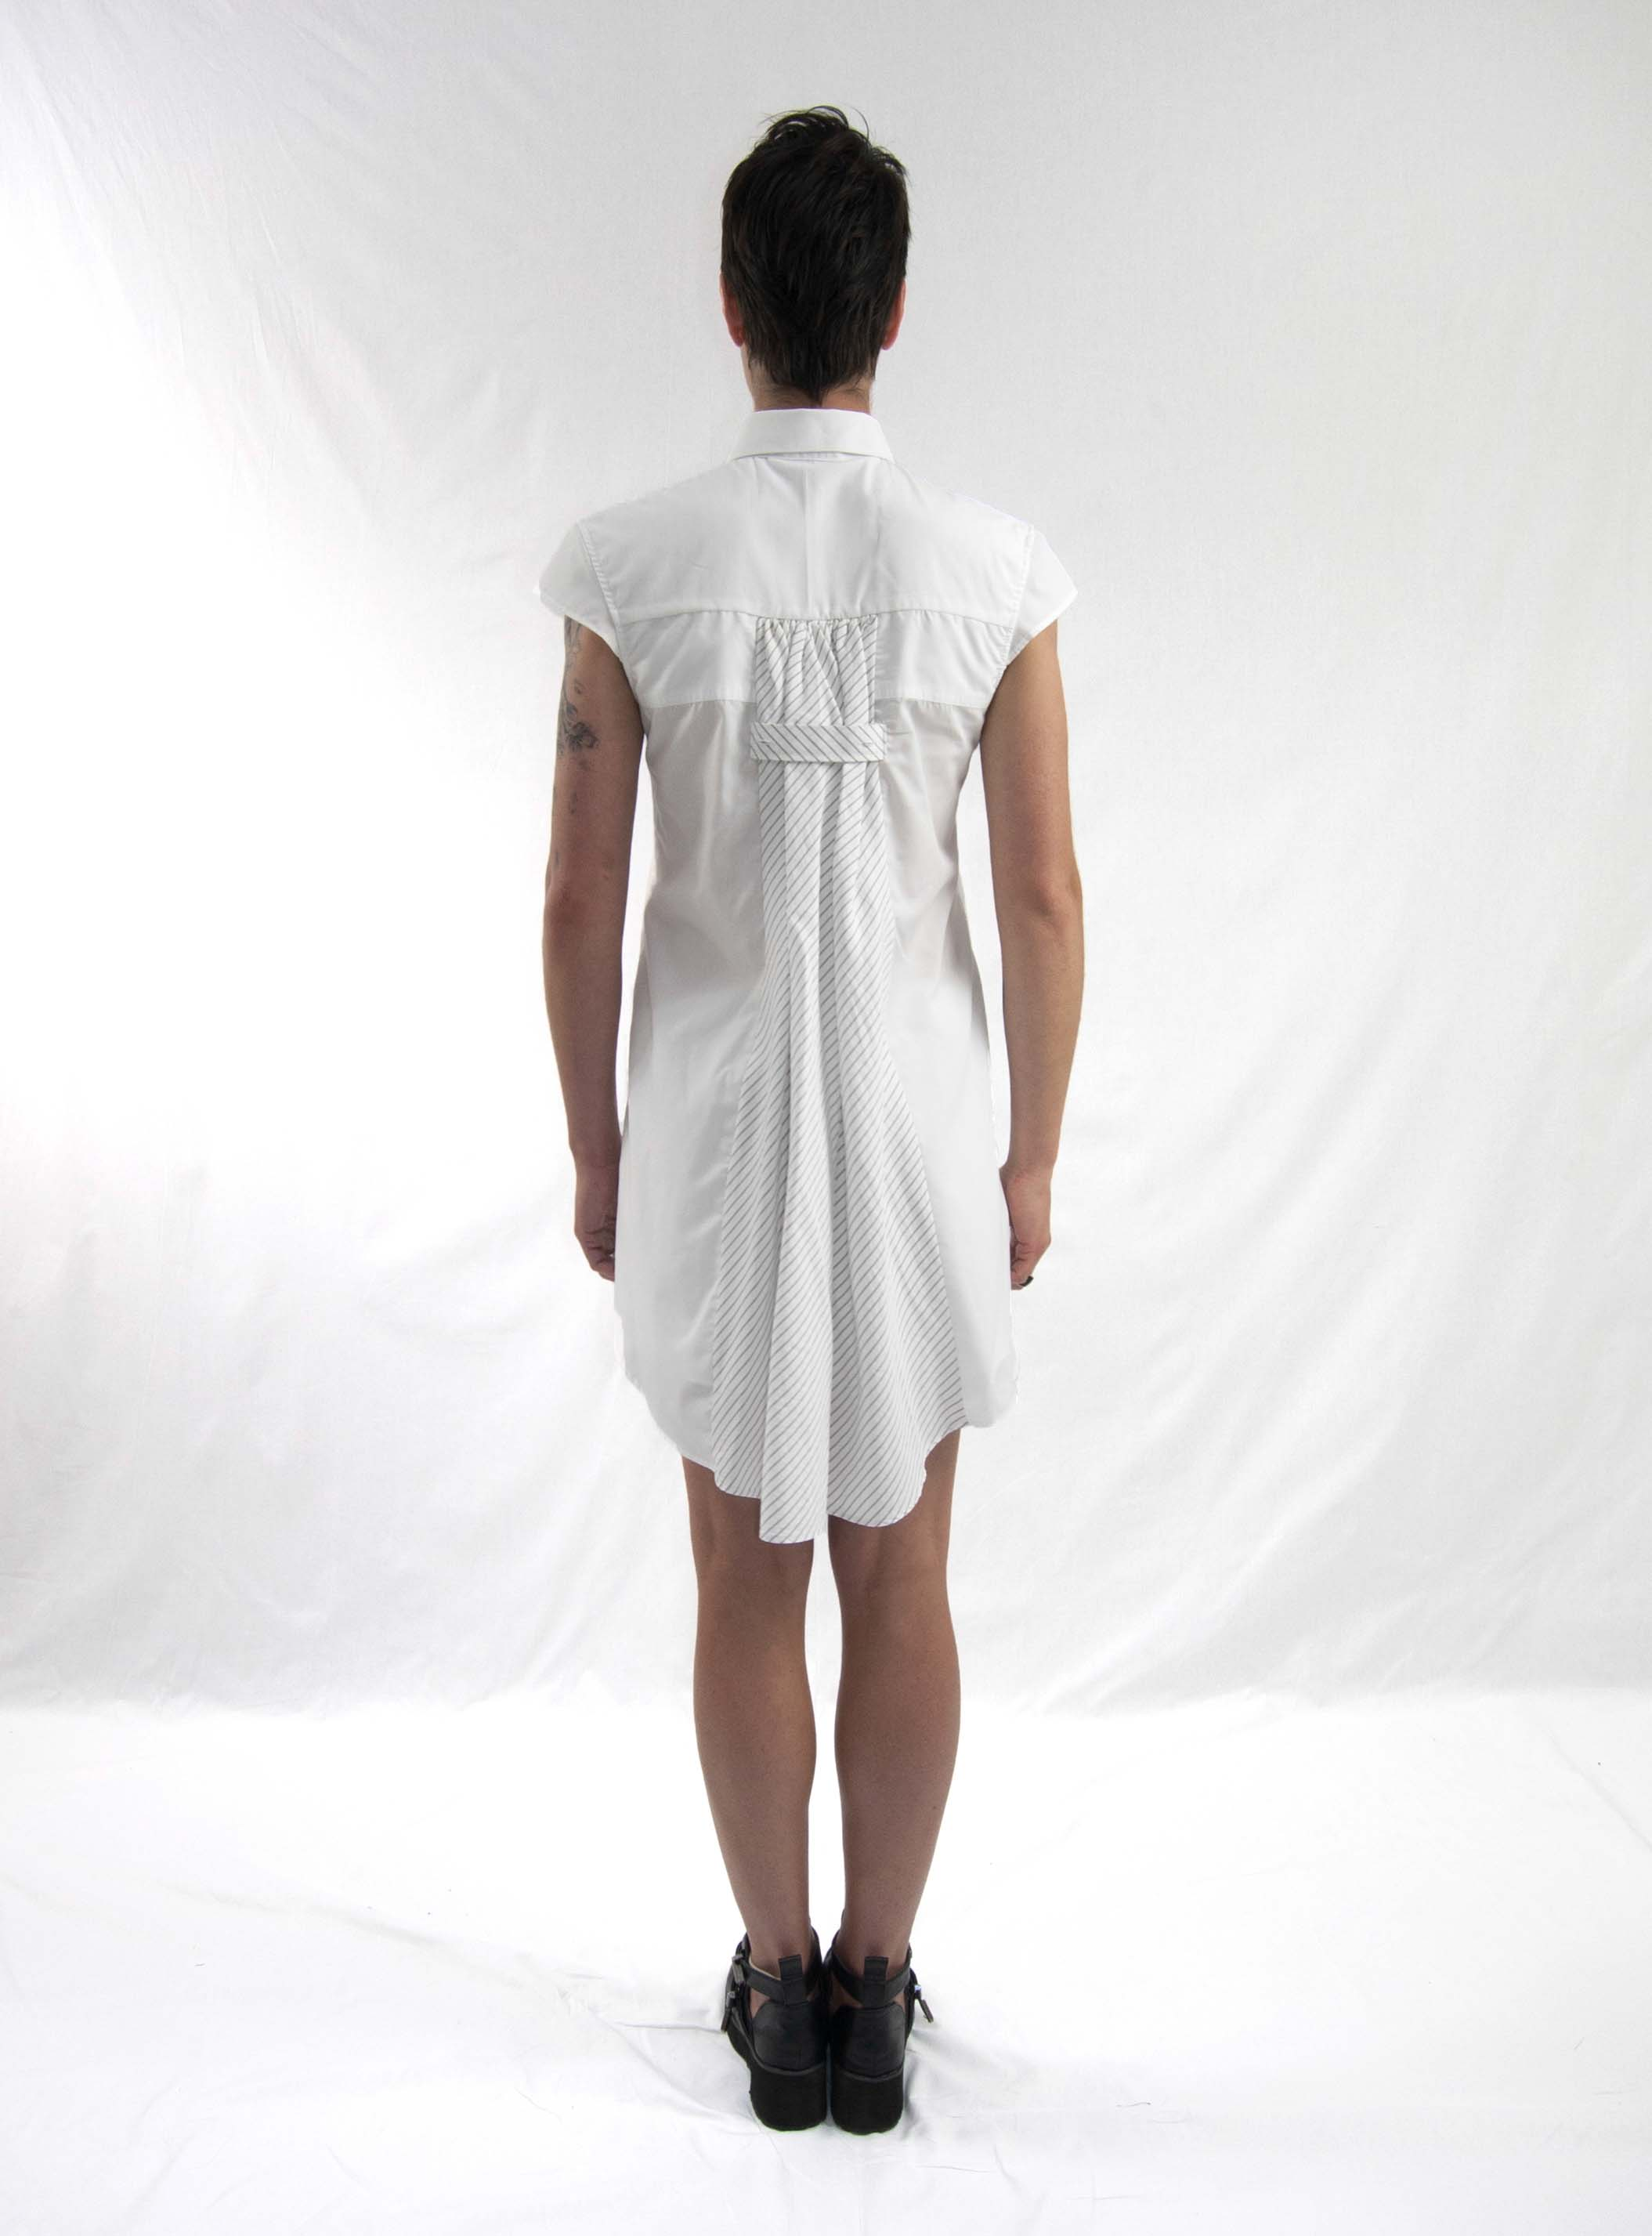 13emergence dress white bk